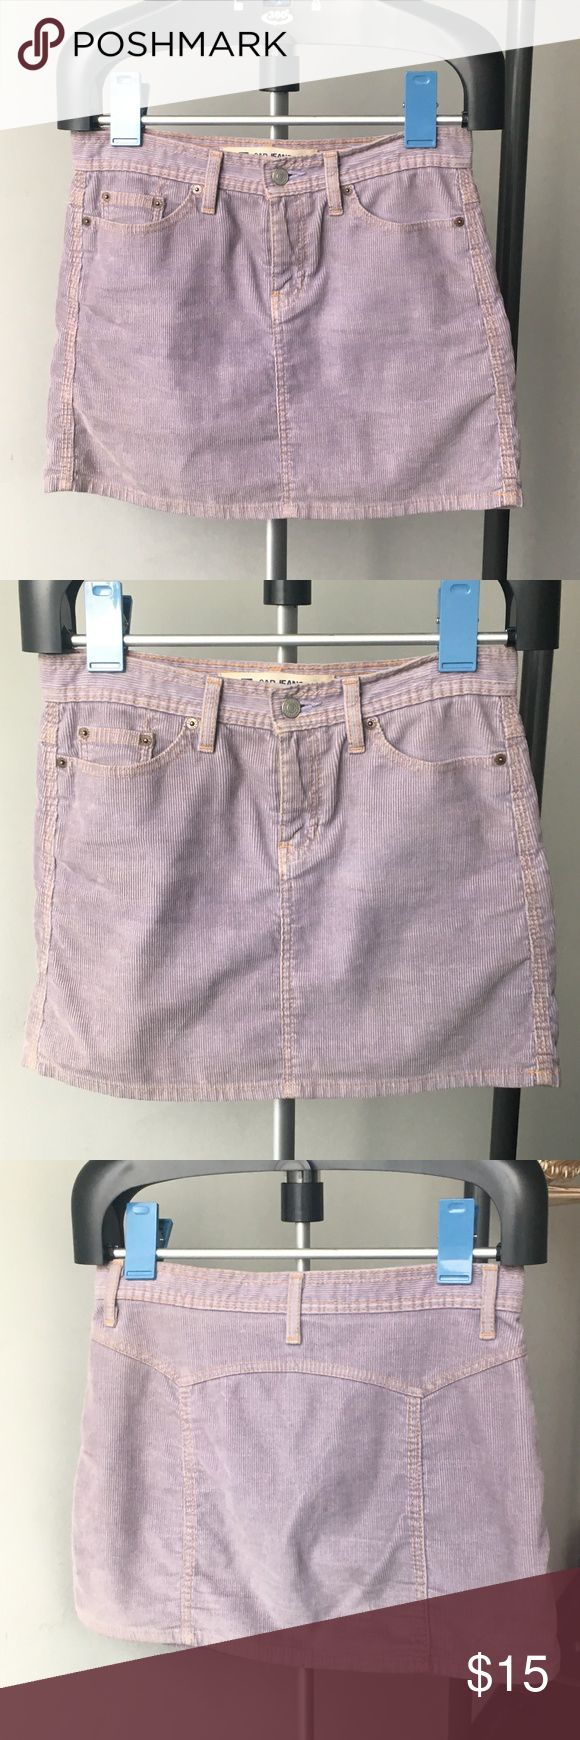 Gap Lavender Corduroy A-Line Mini Skirt this lavender skirt is so cute, really soft, and actually has quite a bit of stretch (2% Lycra)!! I am only selling because I lost weight and it no longer fits right. Light fading throughout. Cotton/polyester/lycra blend. GAP Skirts Mini